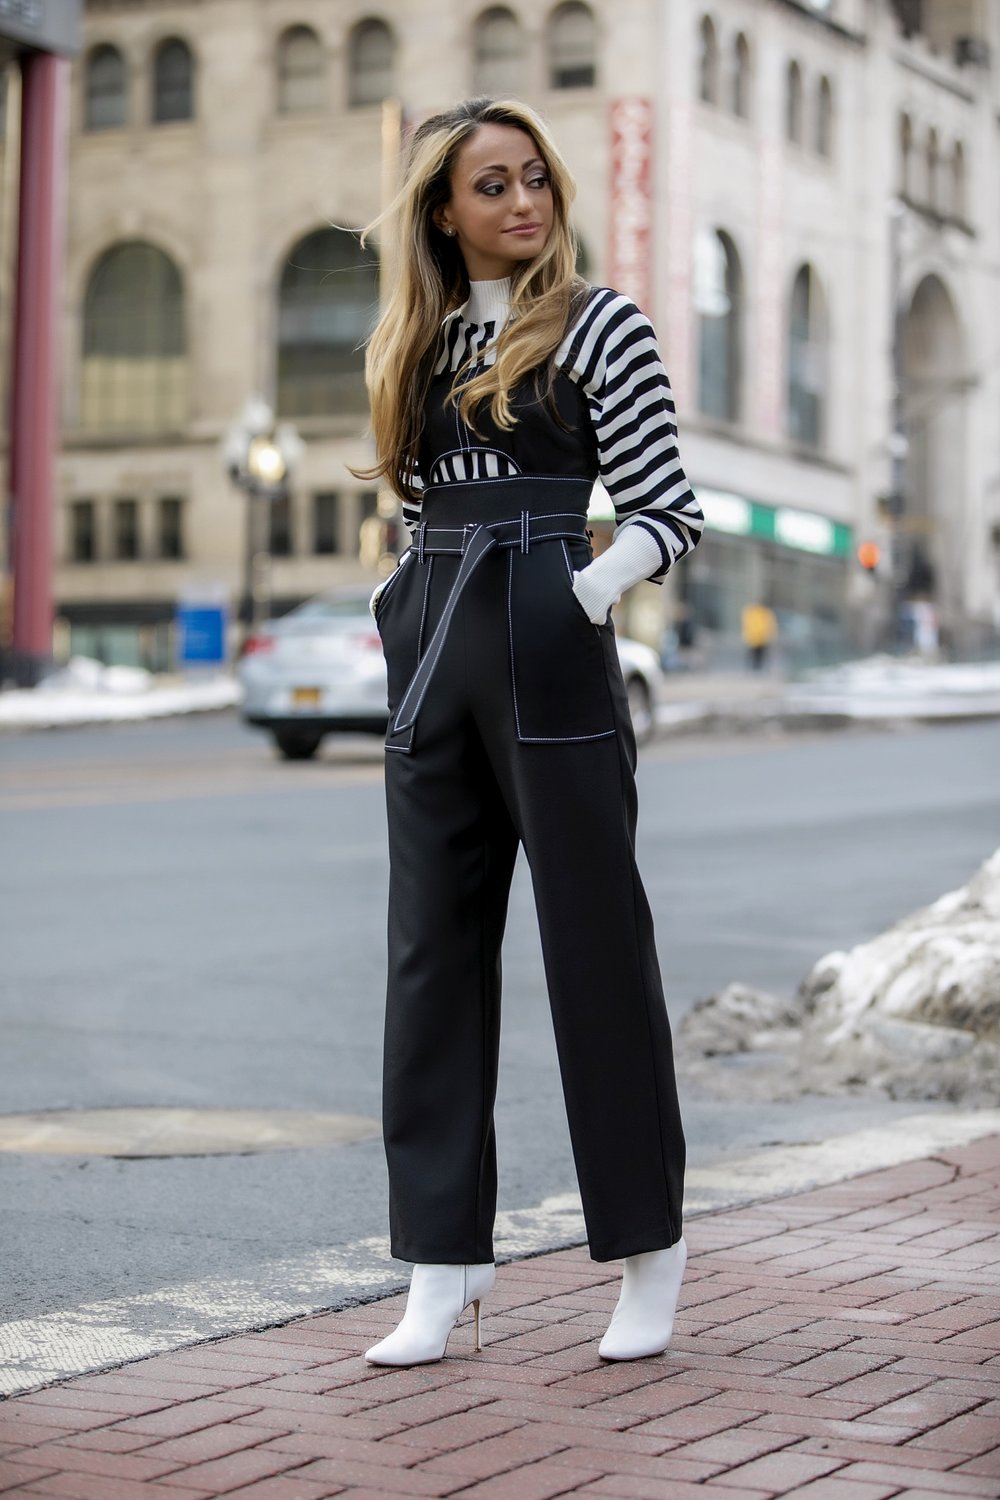 Topshop oversized striped knit and jumpsuit